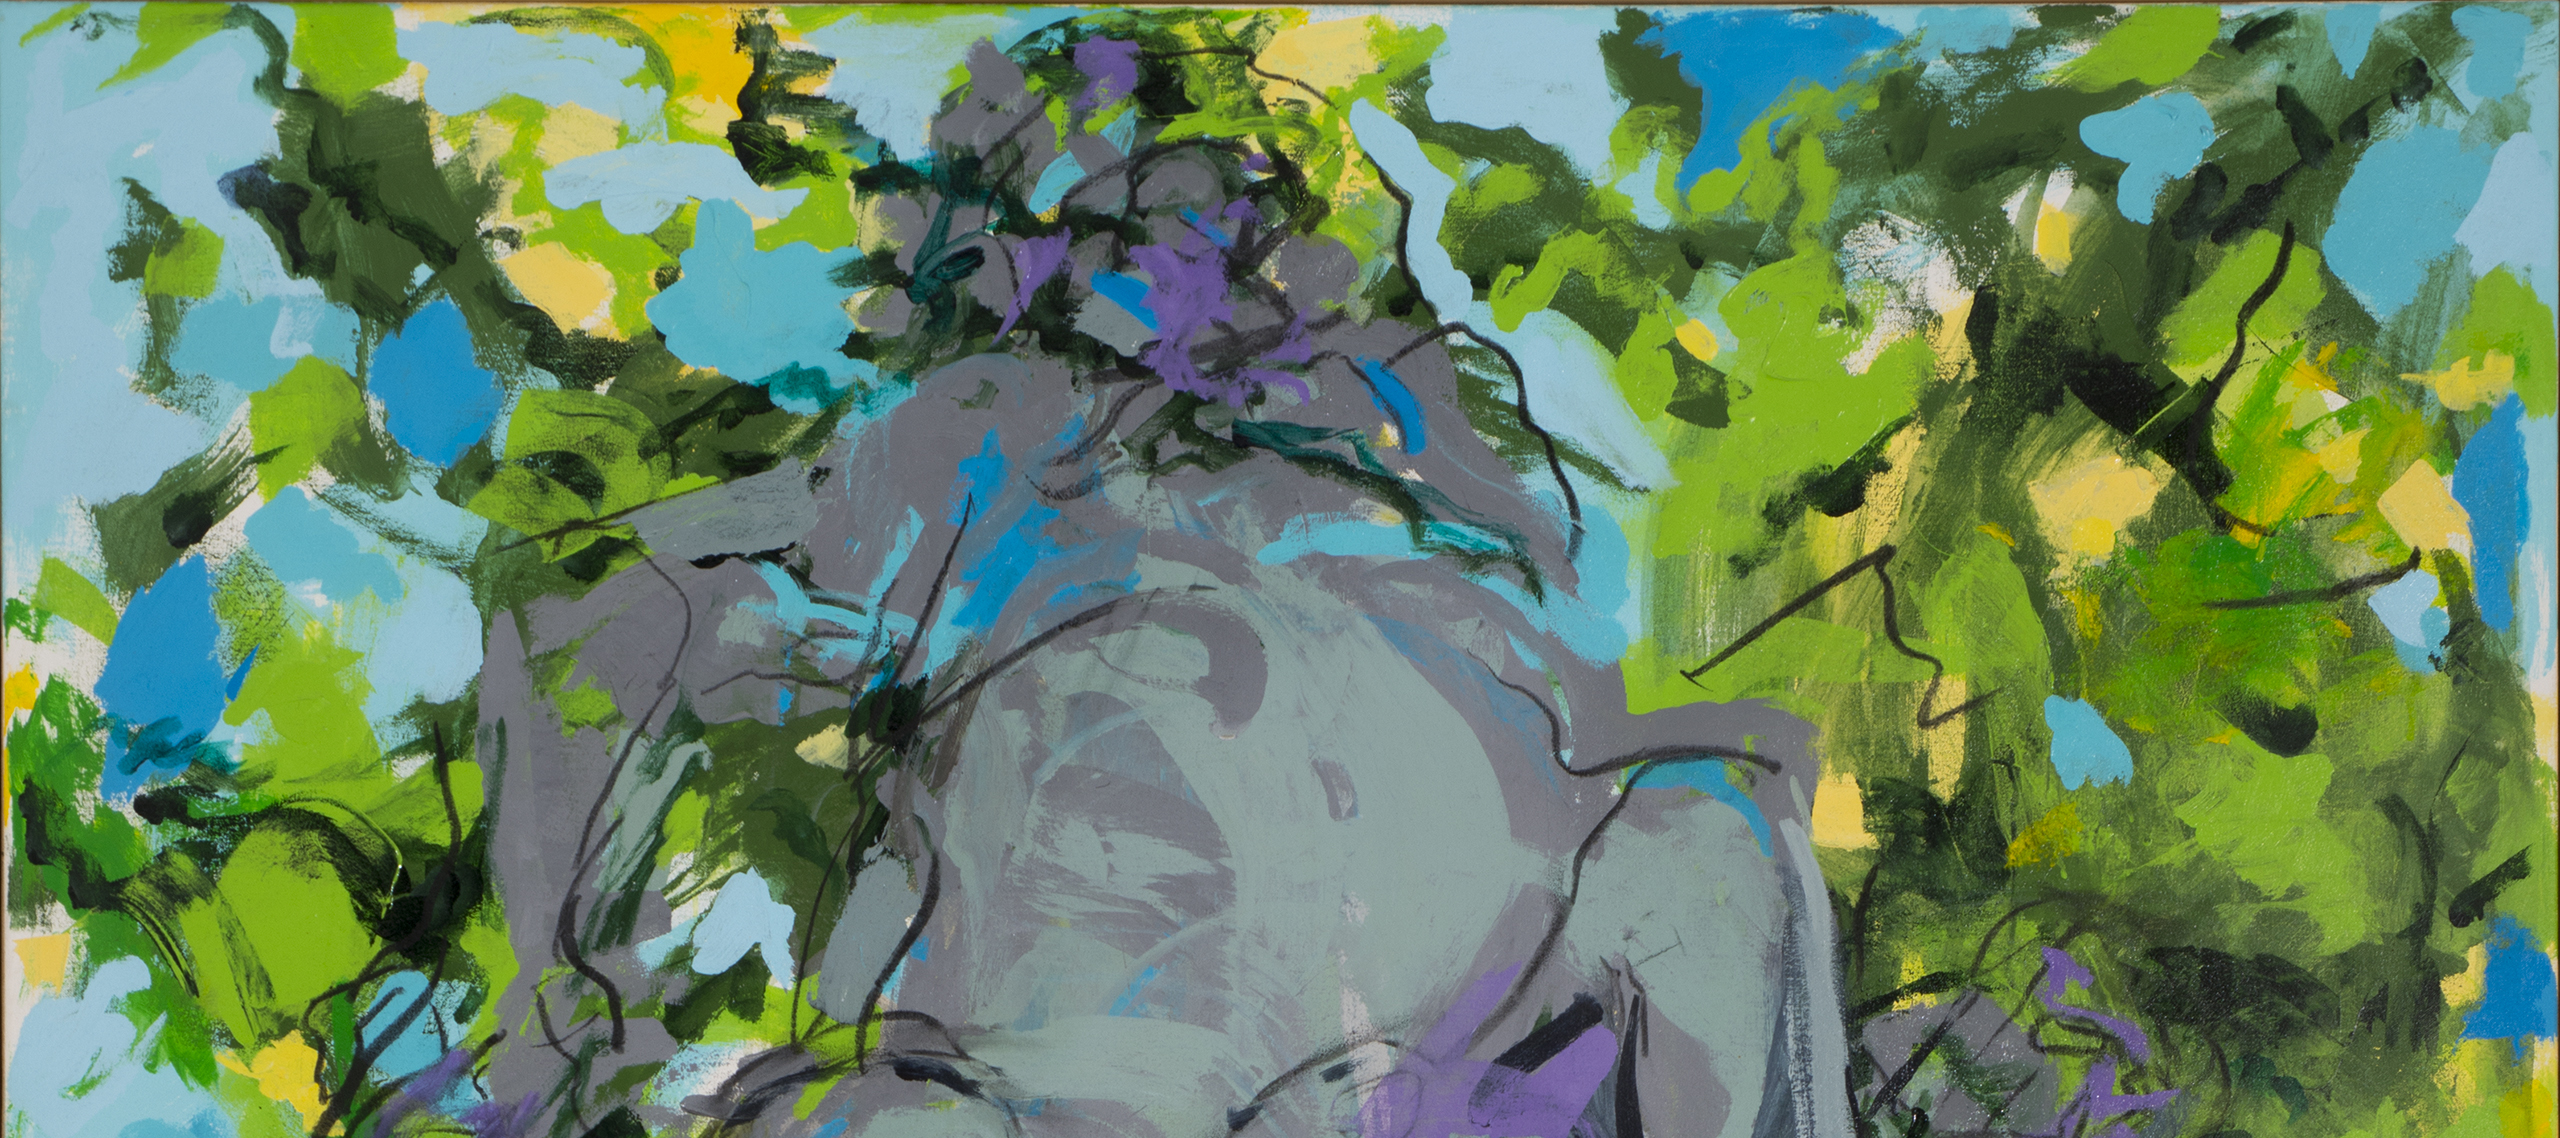 Abstract painting with barely discernable gray figures at the center with black outlines and turquoise and purple highlights. Figures are surrounded by gestural brushstrokes of green, yellow, and blue.